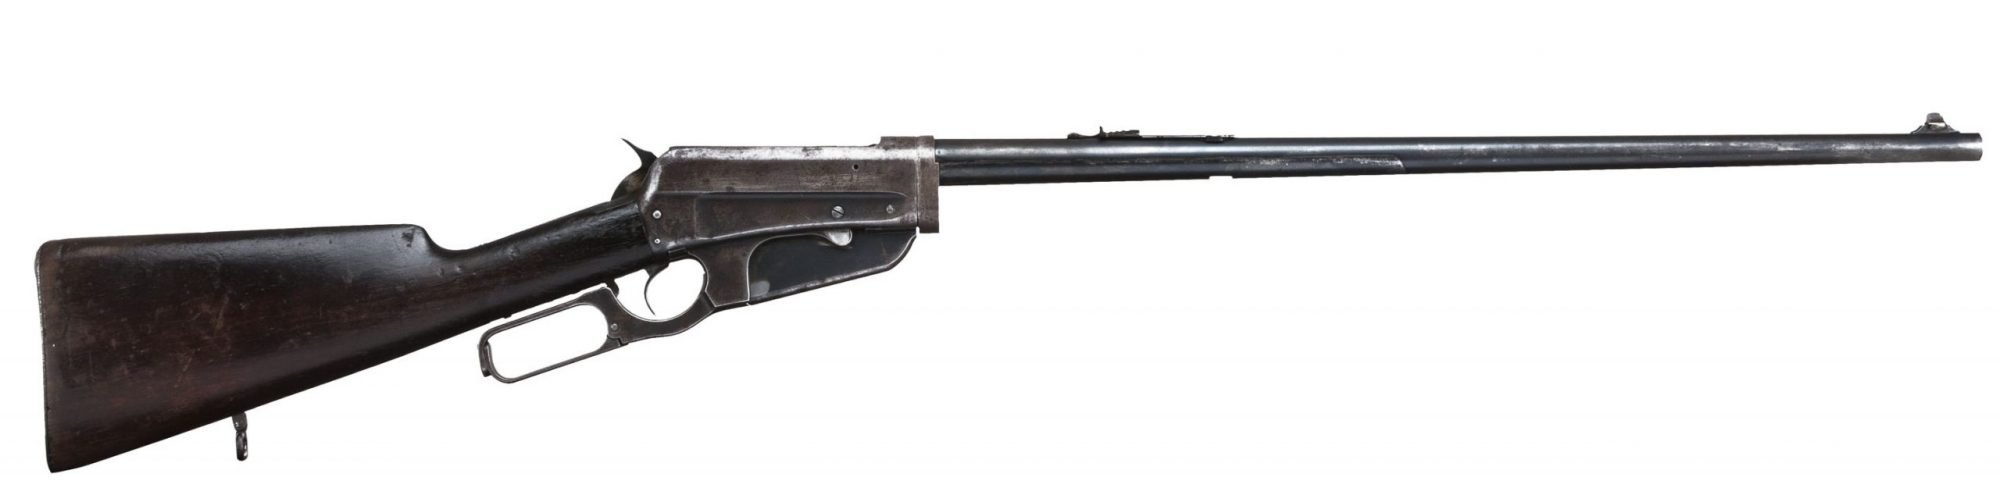 Photo of a Winchester Model 1895, chambered in .405 Winchester, originally built in 1910, before restoration by Turnbull Restoration of Bloomfield, NY